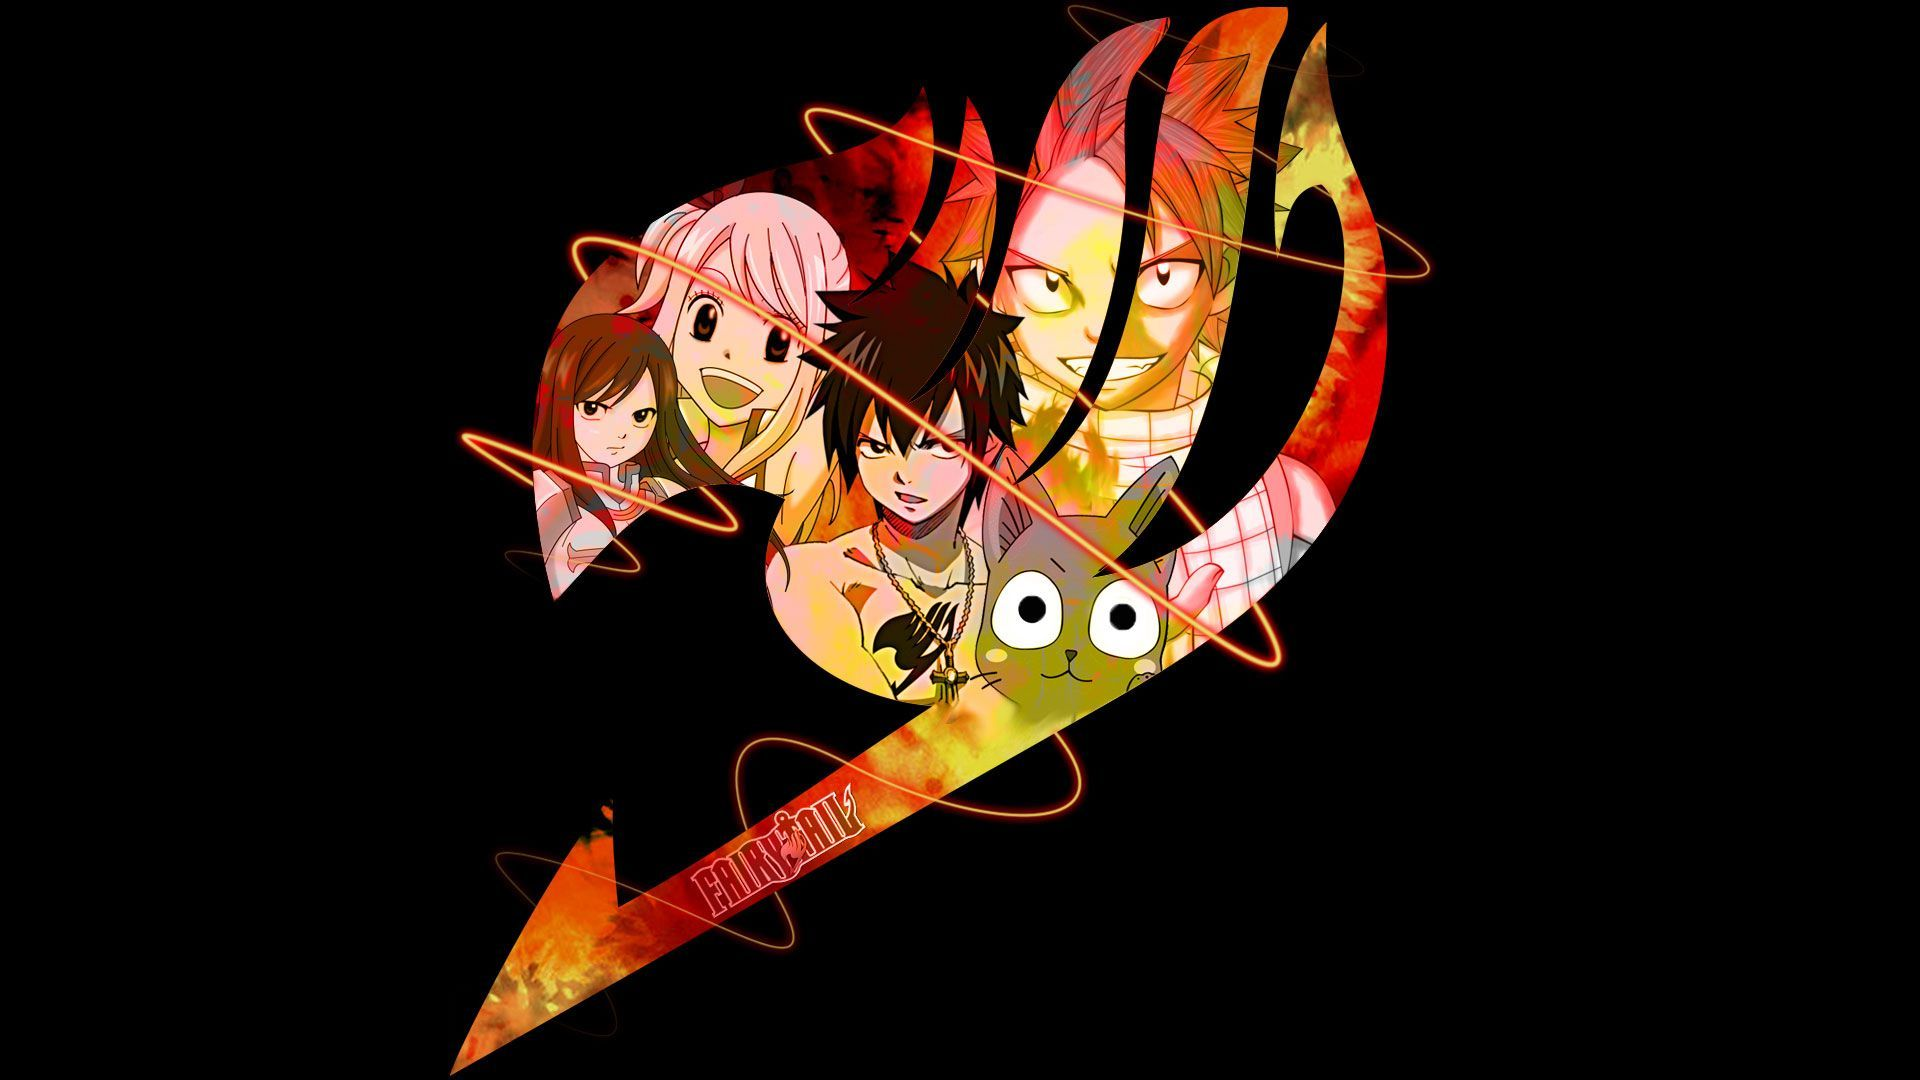 Fairy Tail Logo Wallpapers High Quality Resolution Click